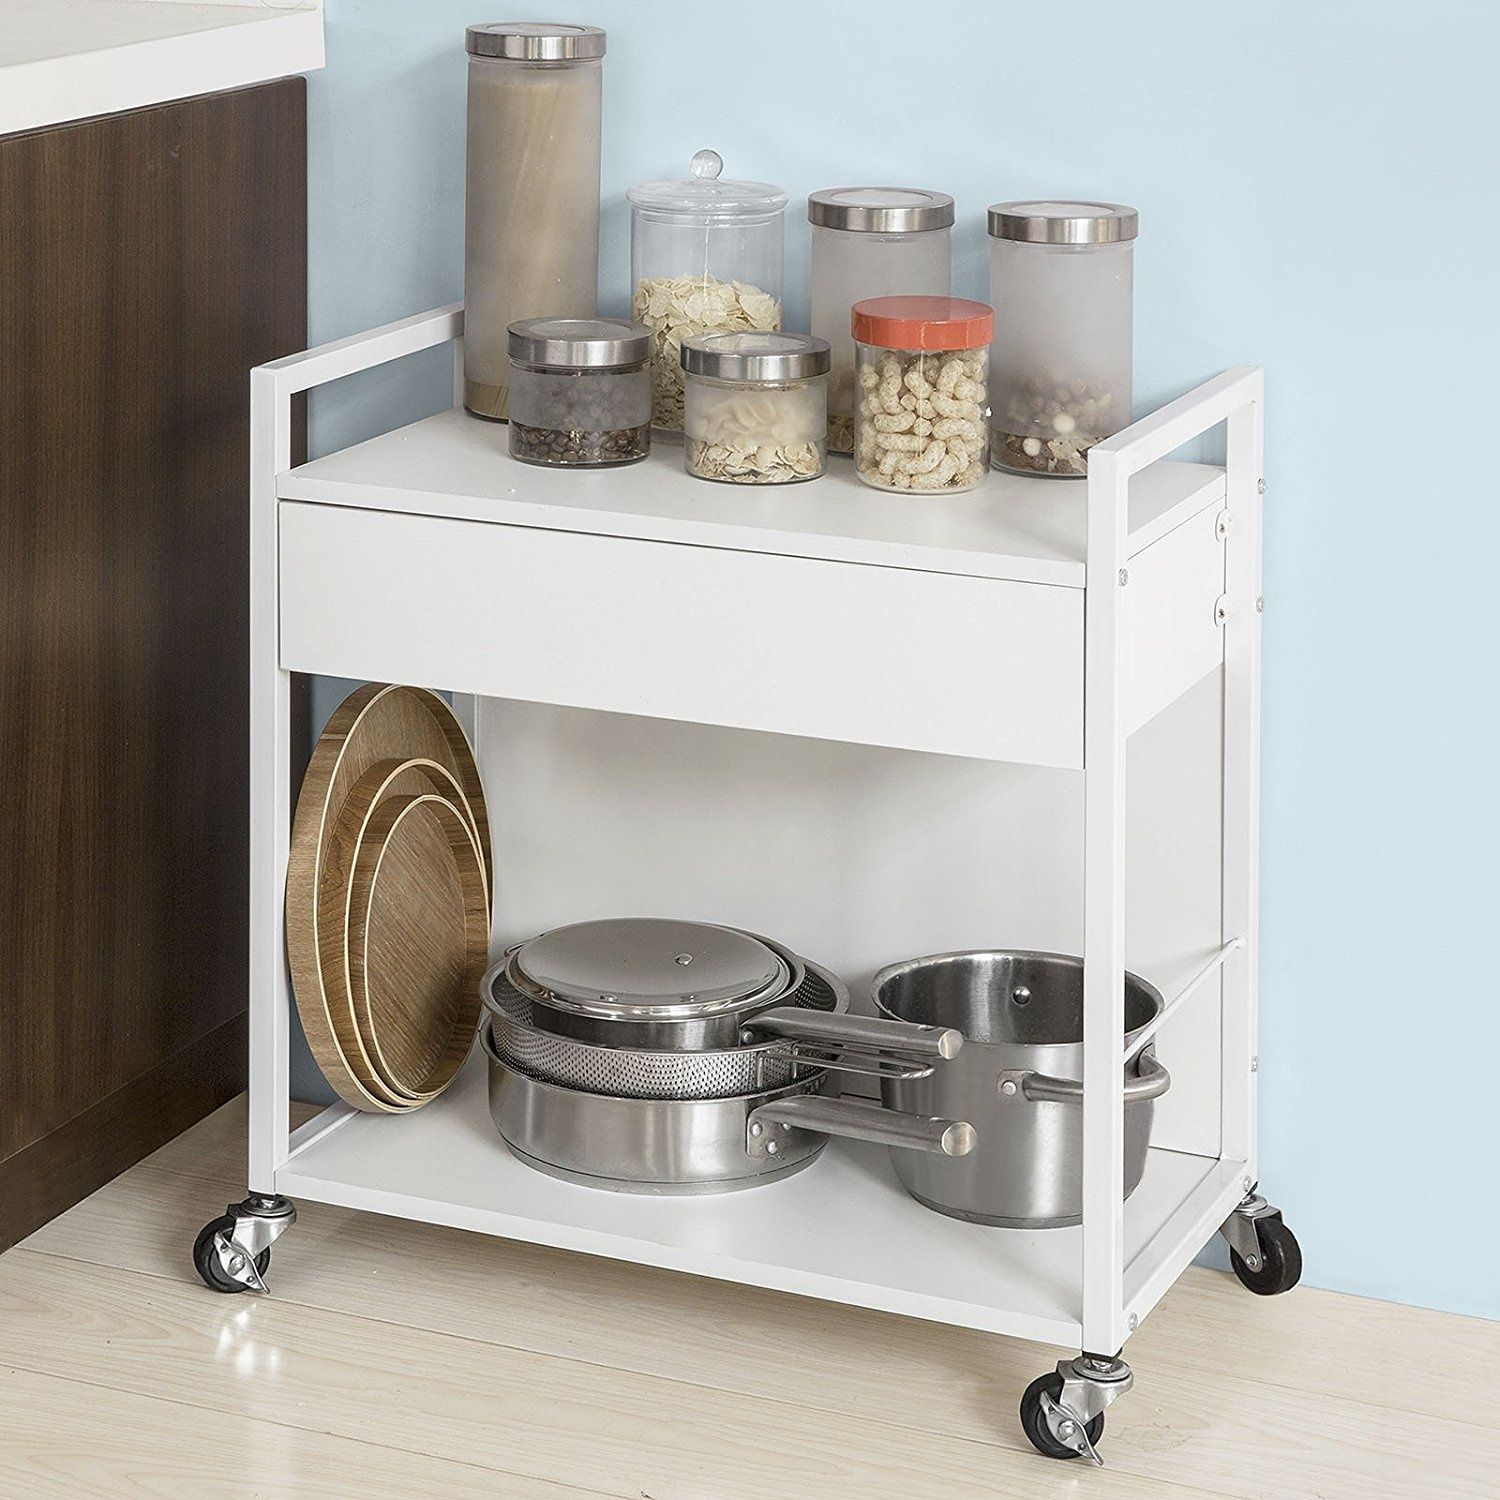 Sobuy Shop Sobuy Fkw50 W Home Kitchen Serving Trolley Storage Trolley With Drawer Storage Rack On Wheels White